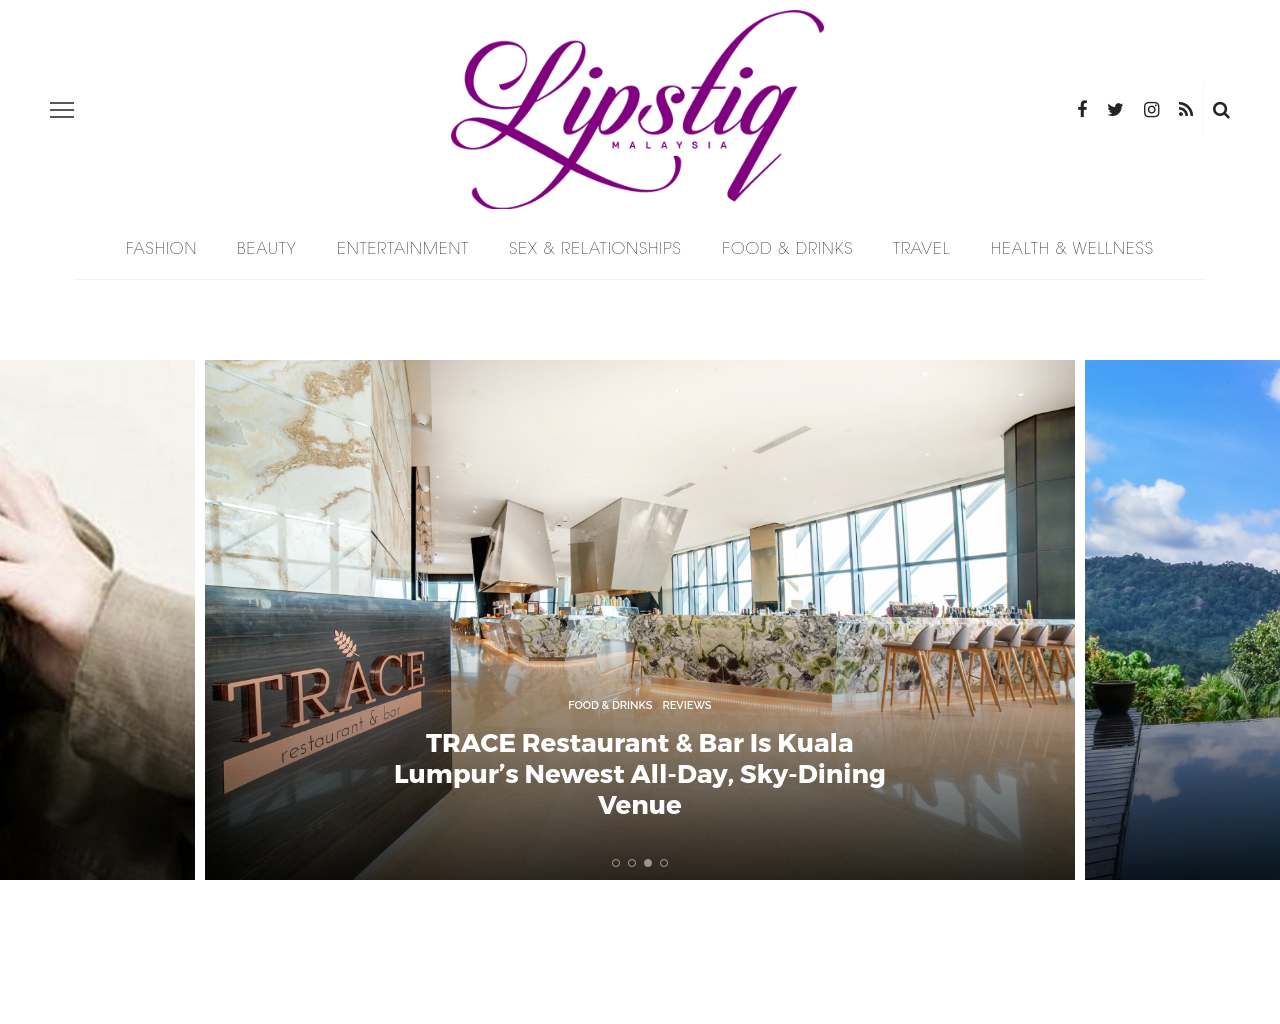 Lipstiq-Advertising-Reviews-Pricing